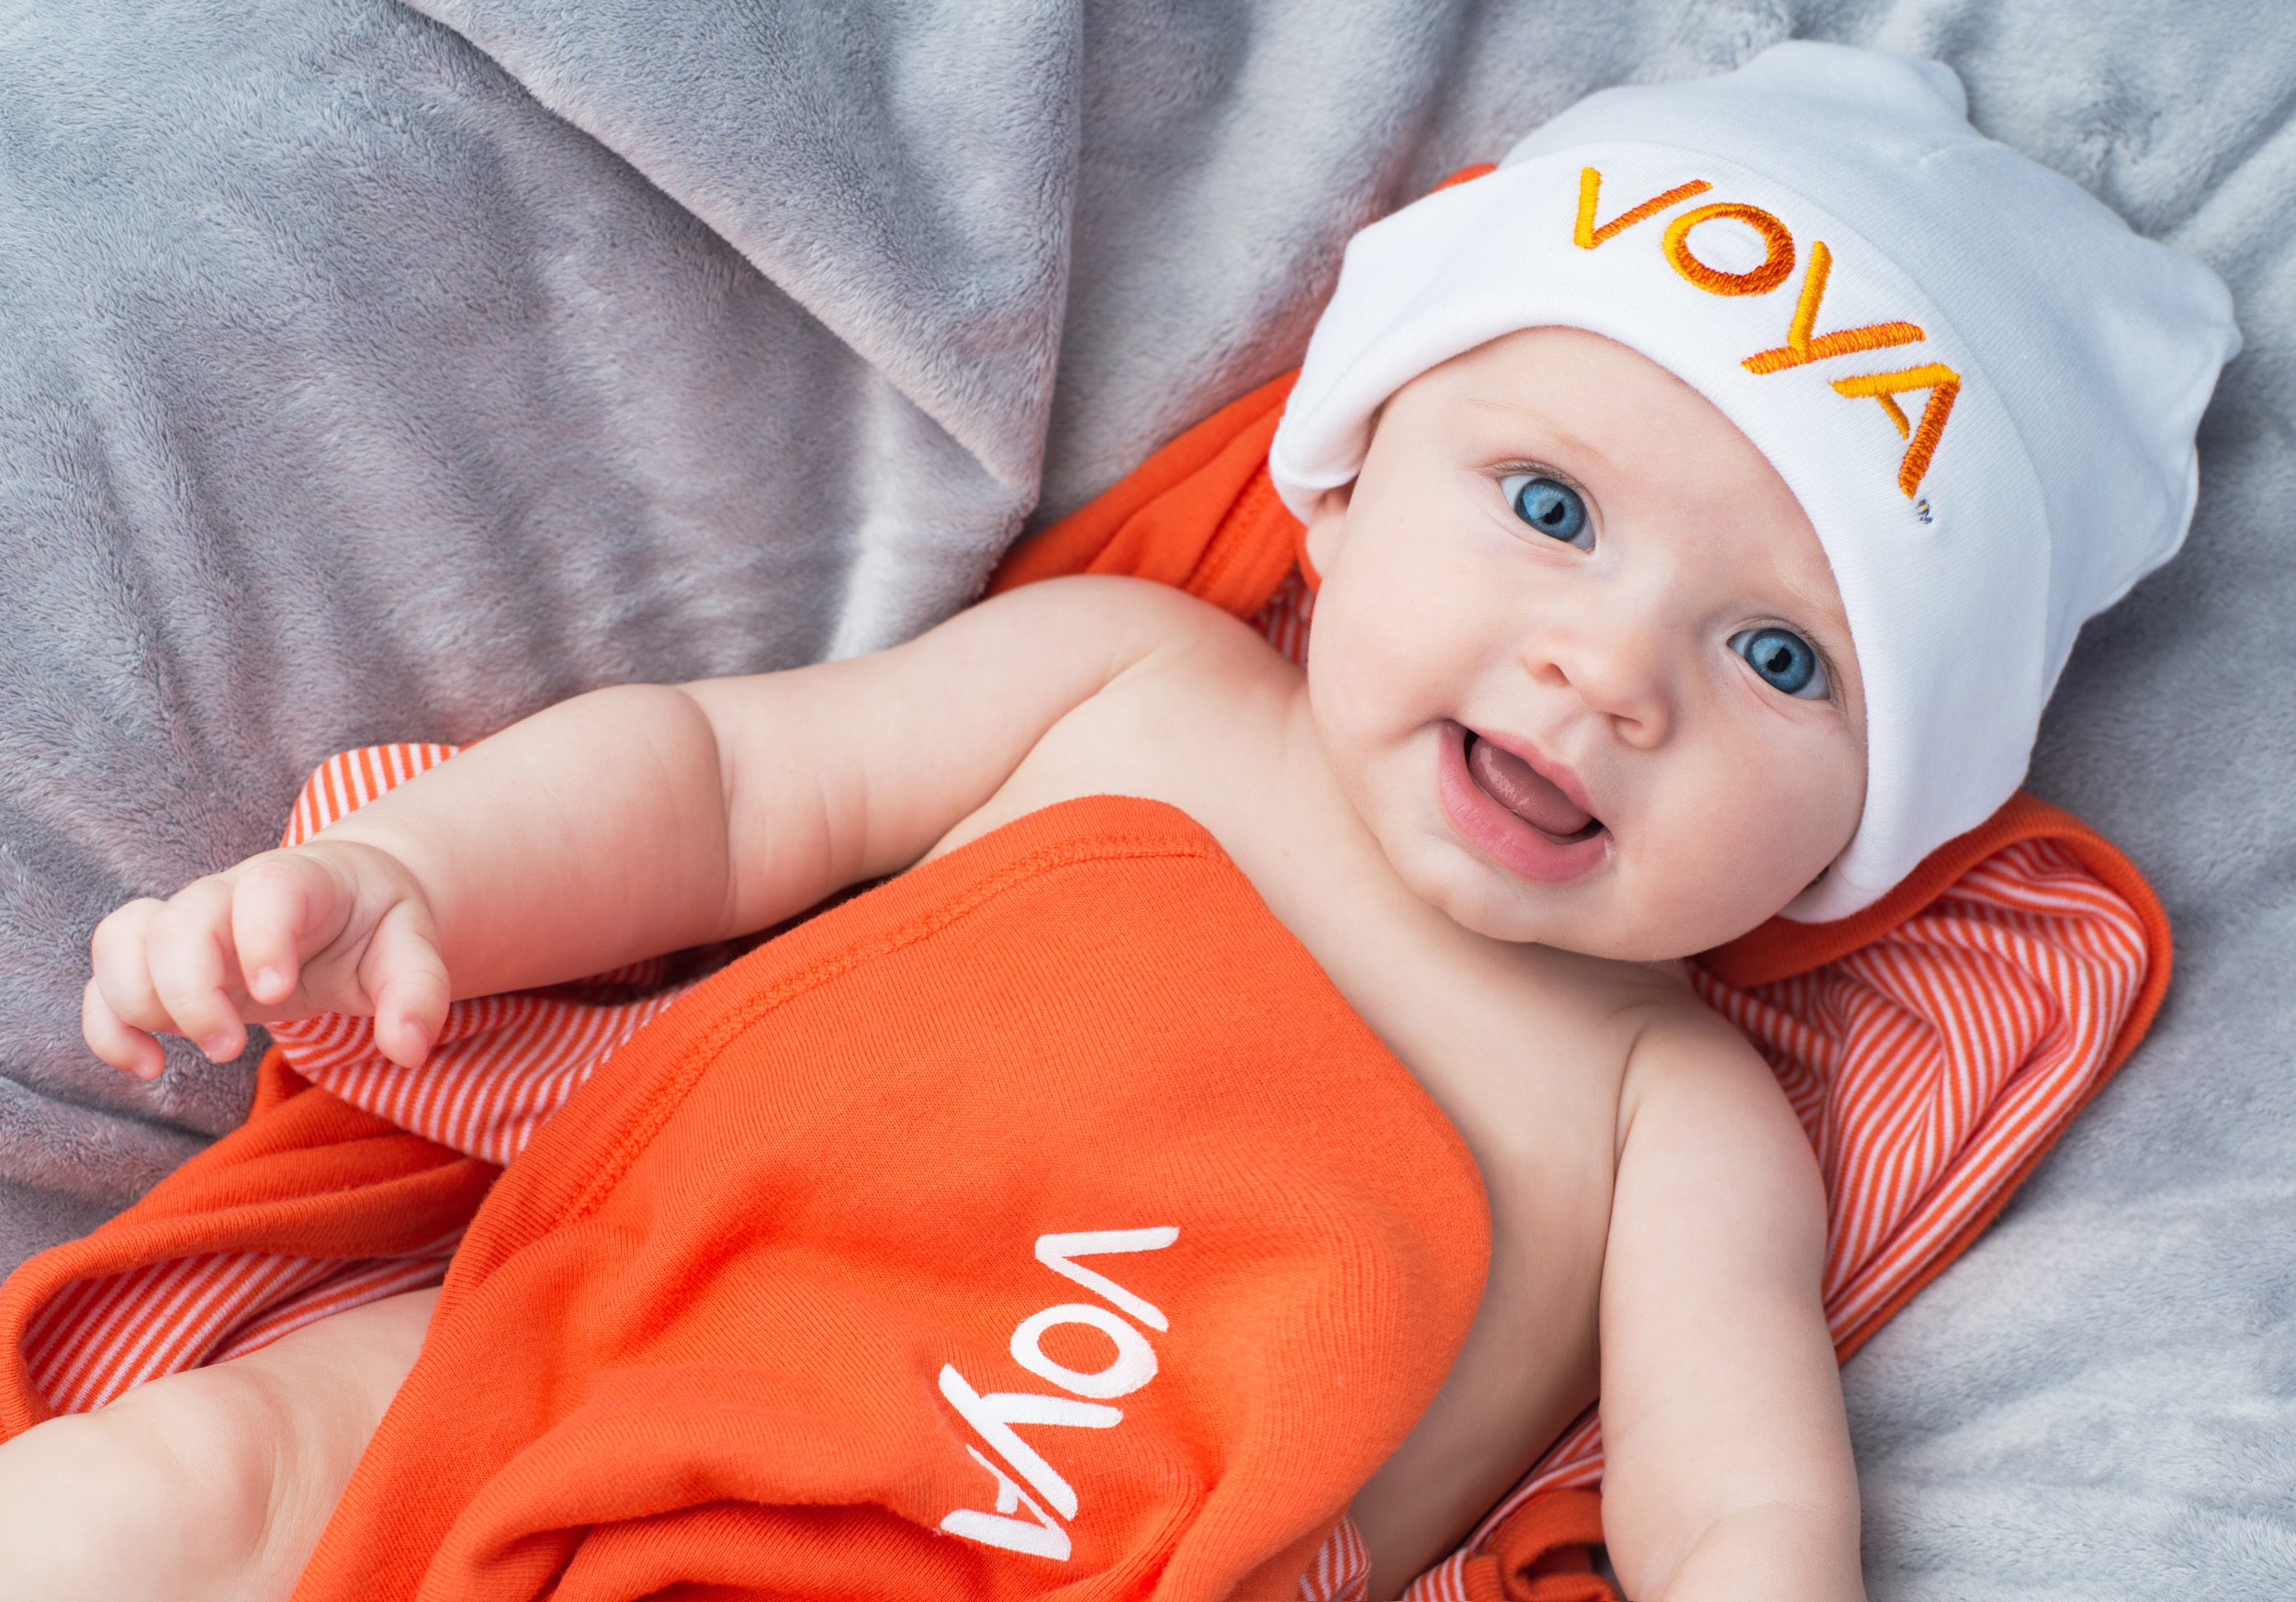 On average, more than 10,000 babies are born each day in the United States. The Voya Born to Save™ program is helping the next generation on the path to retirement readiness.